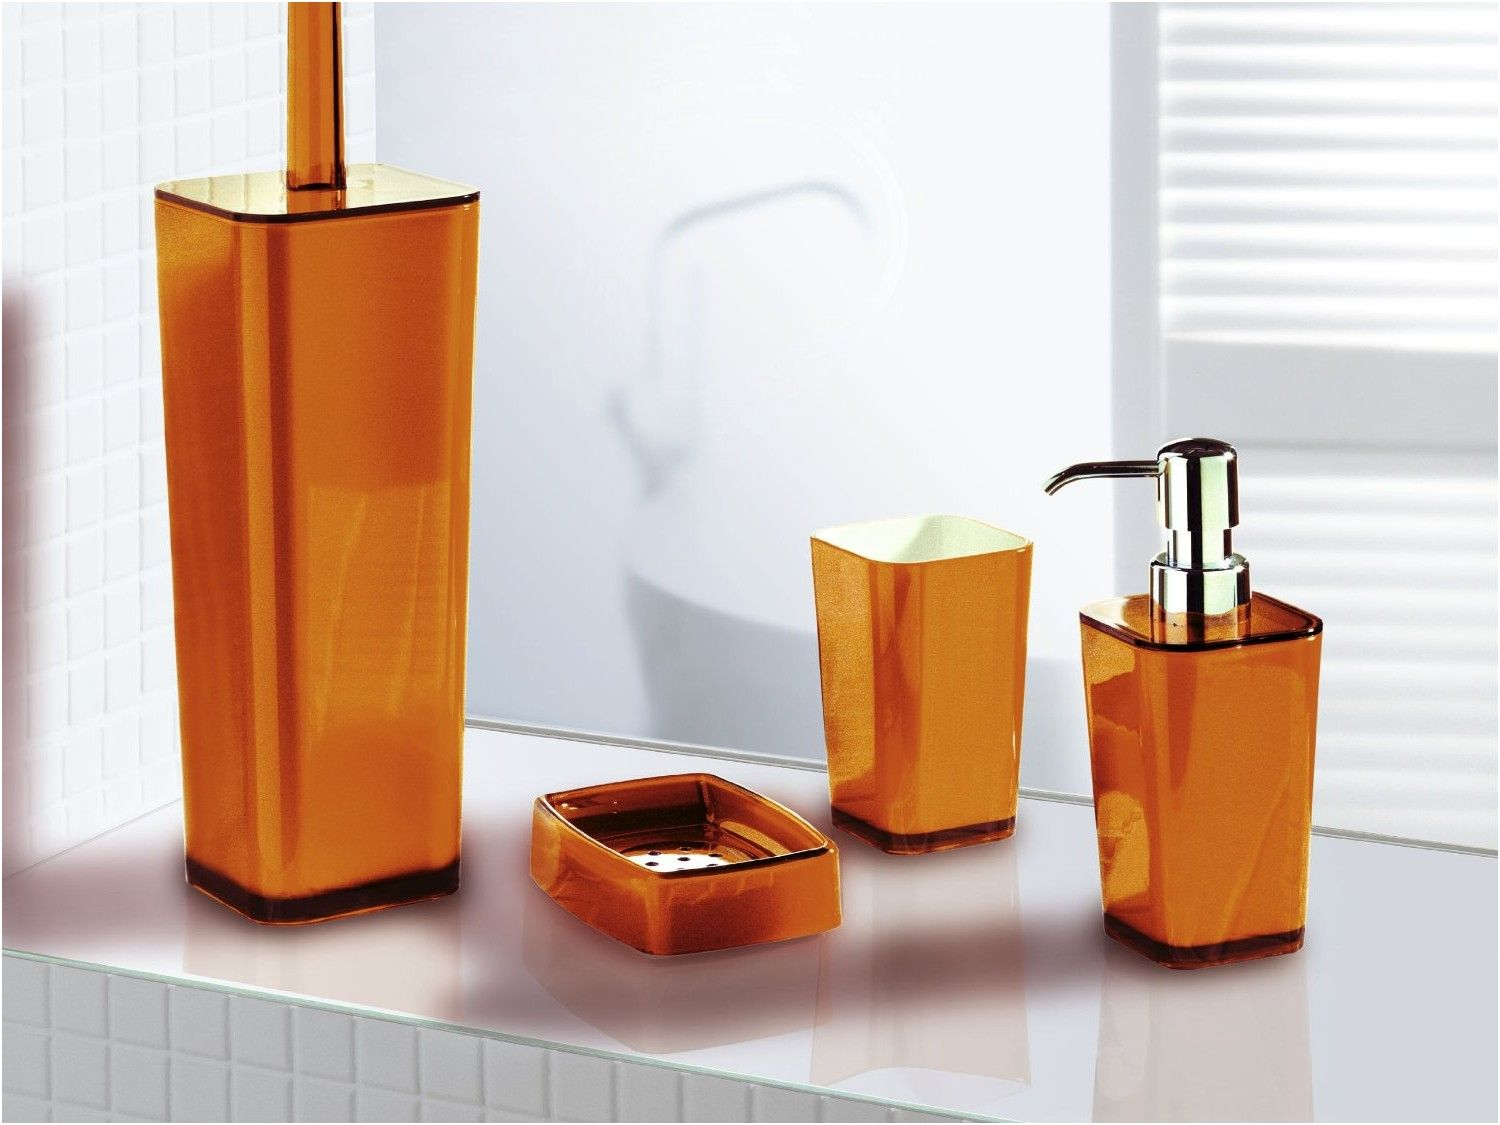 orange and grey bathroom accessories pick your size orange towels from designer bathroom accessories uk - Bathroom Accessories Uk